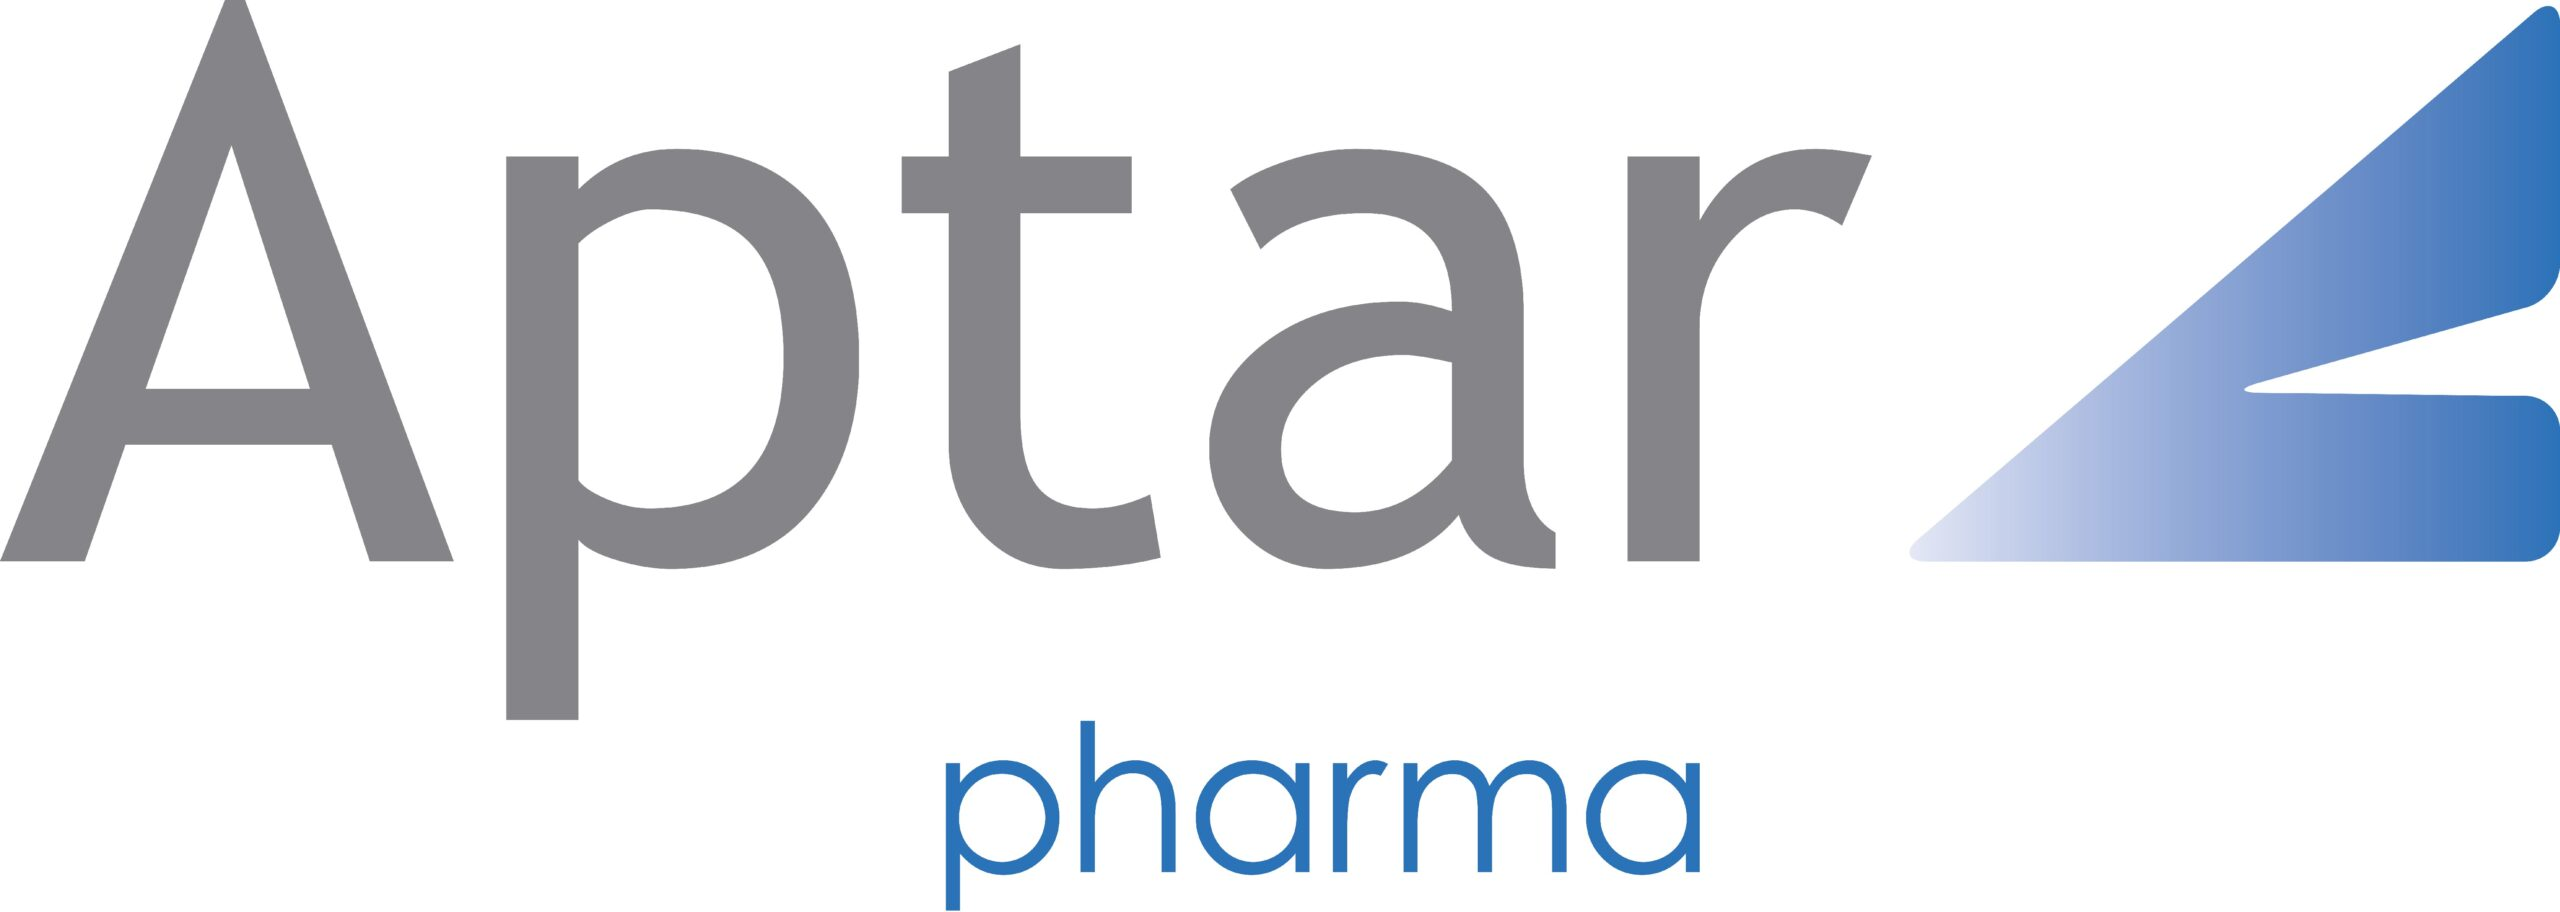 https://www.aptar.com/pharmaceutical/delivery-routes/pulmonary/